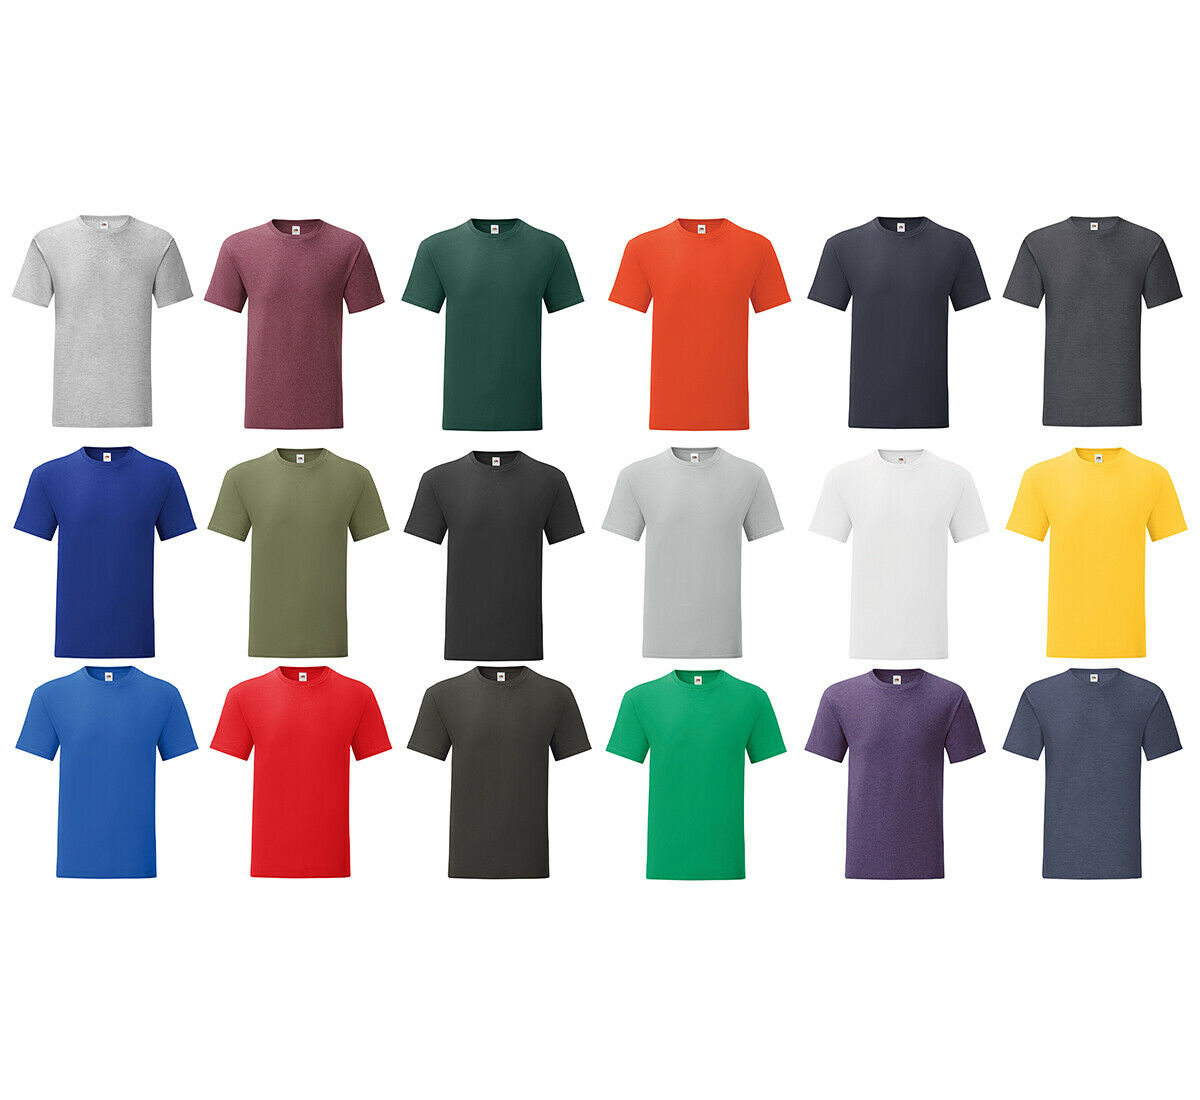 Herren T-Shirt Slim Fit Kurzarm T-Shirt Baumwolle Rundhals Uni Fruit of the Loom